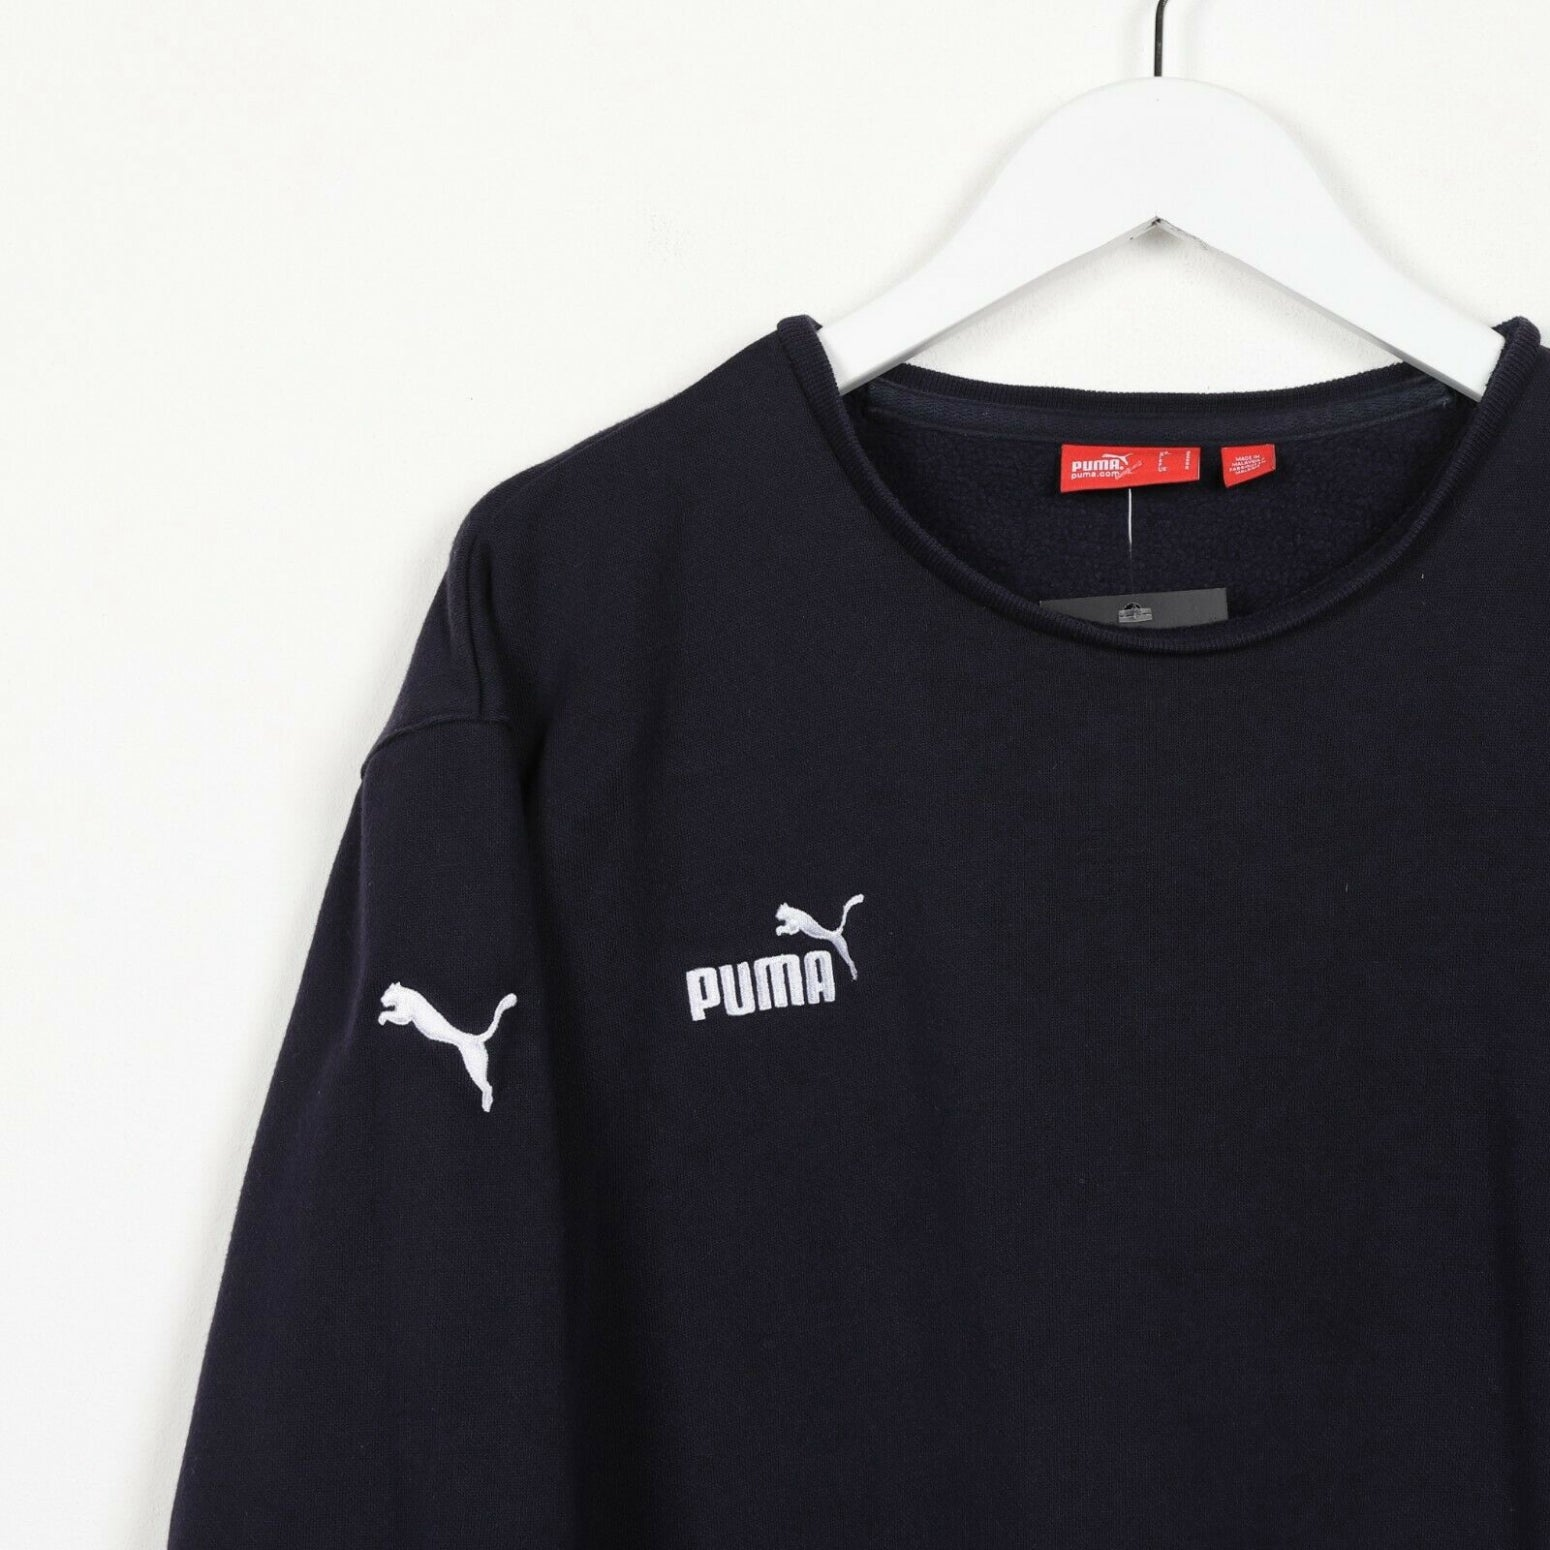 Vintage PUMA Small Logo Sweatshirt Jumper Blue | Small S